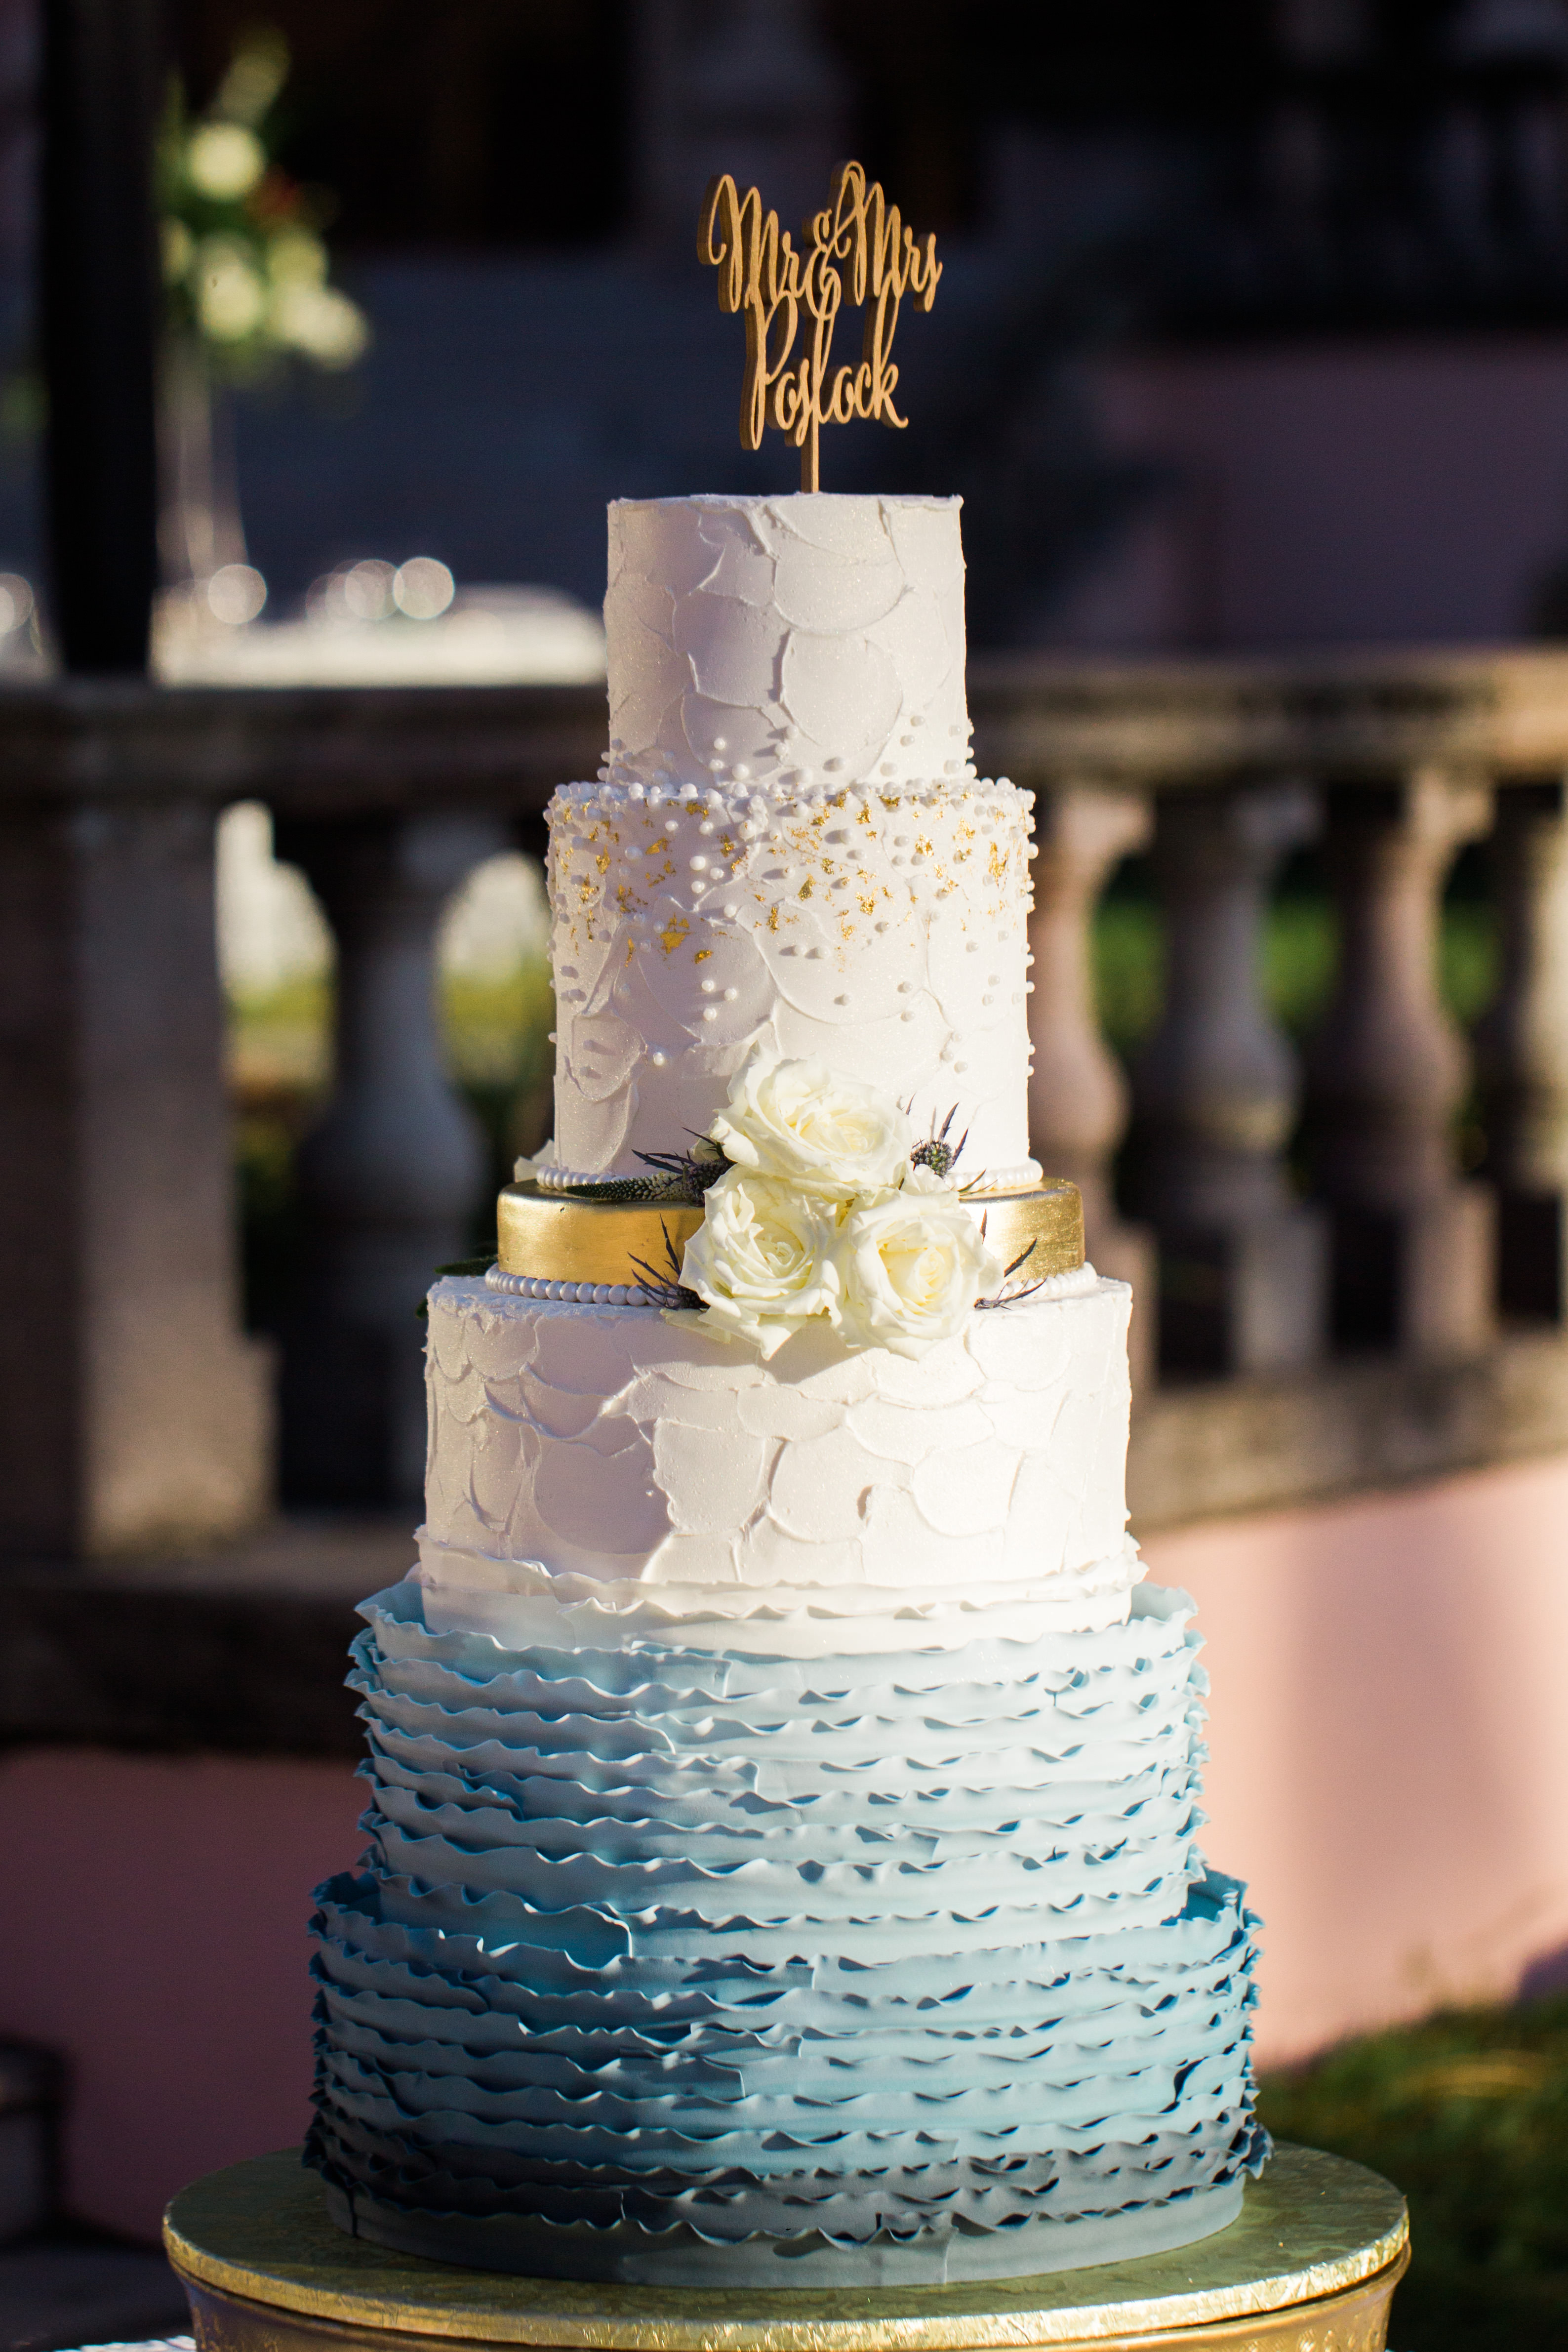 Five tier White, Blue Ombre Wedding Cake with Gold Accents and Real Ivory Rose Florals, Custom Gold Cake Topper | Tampa Bay Wedding Planner NK Weddings